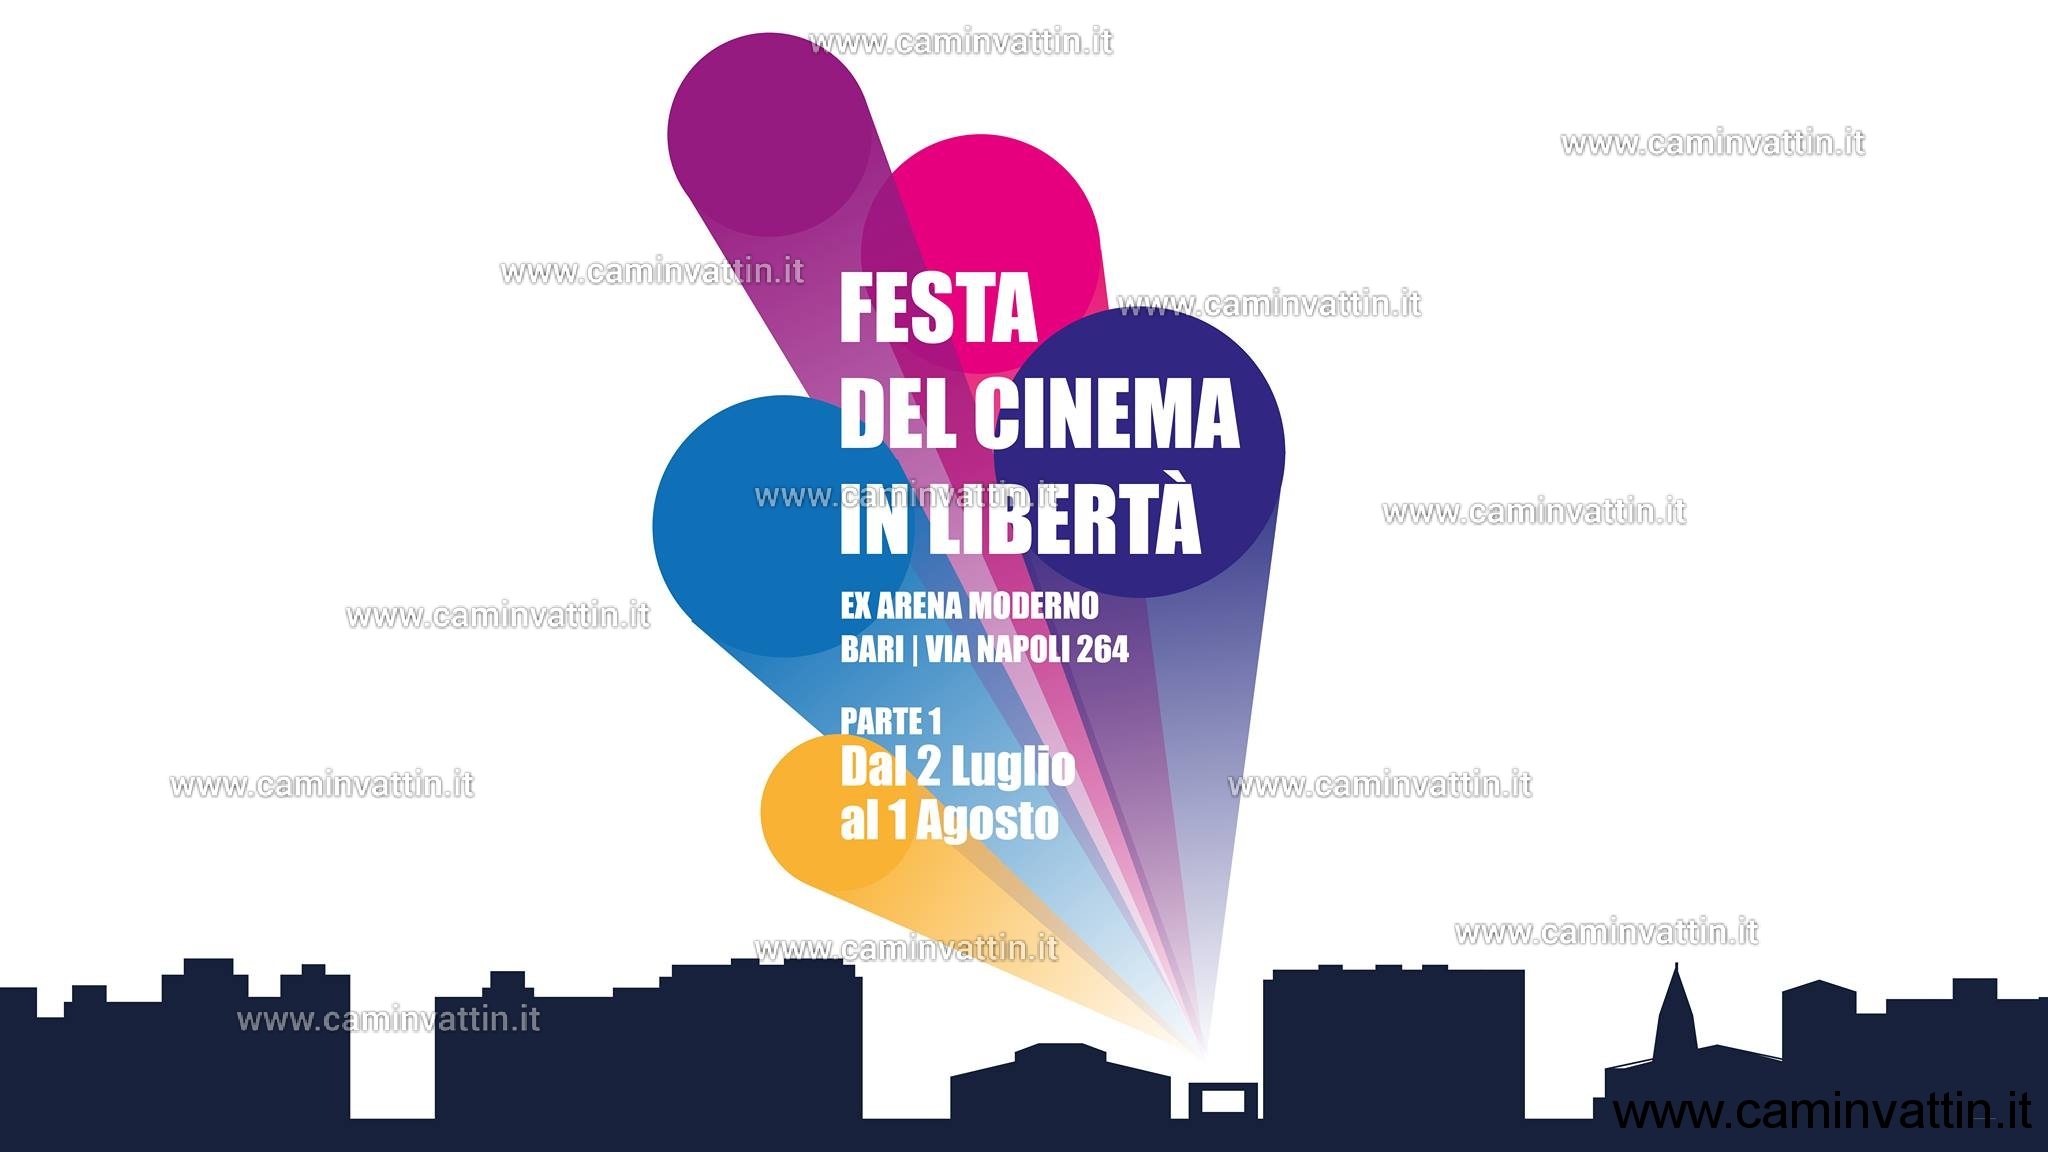 festa del cinema in liberta